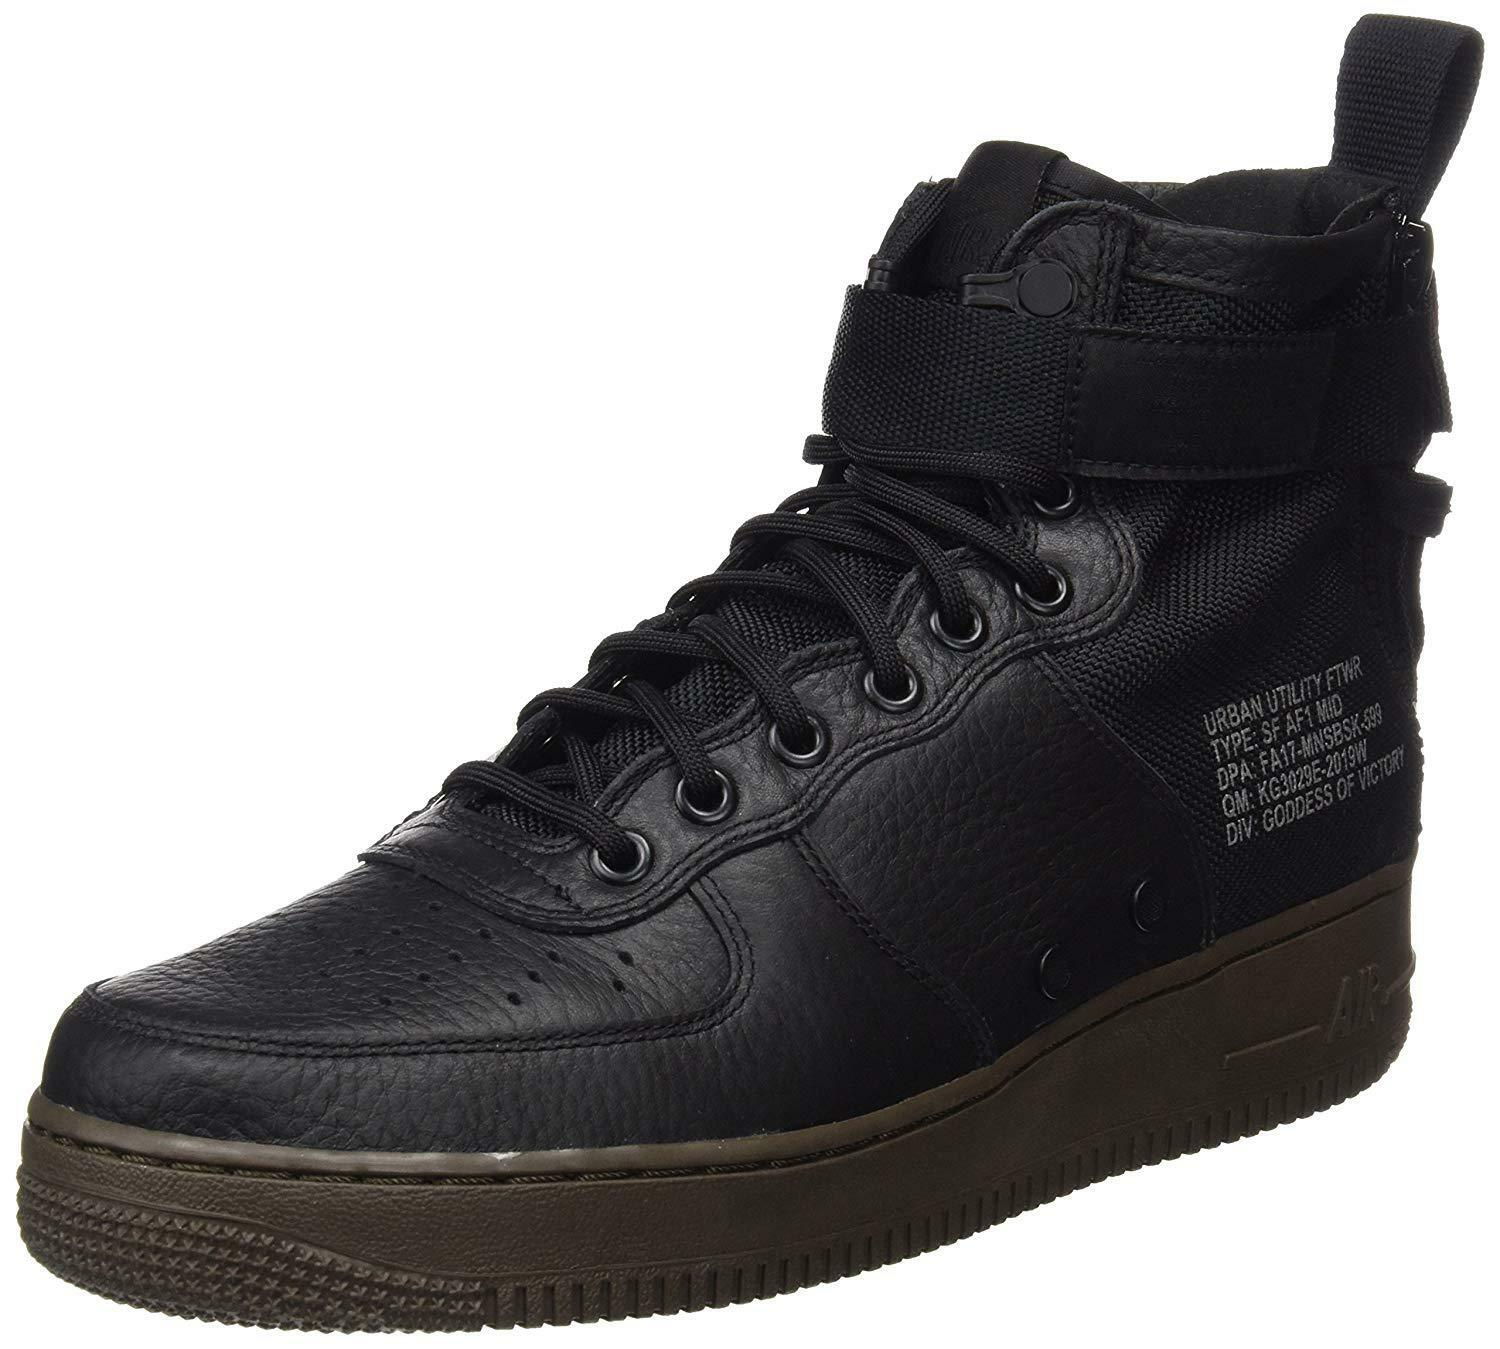 NIKE Men's SF AF1 Mid Lifestyle shoes 917753 002 size 9.5 New in the box